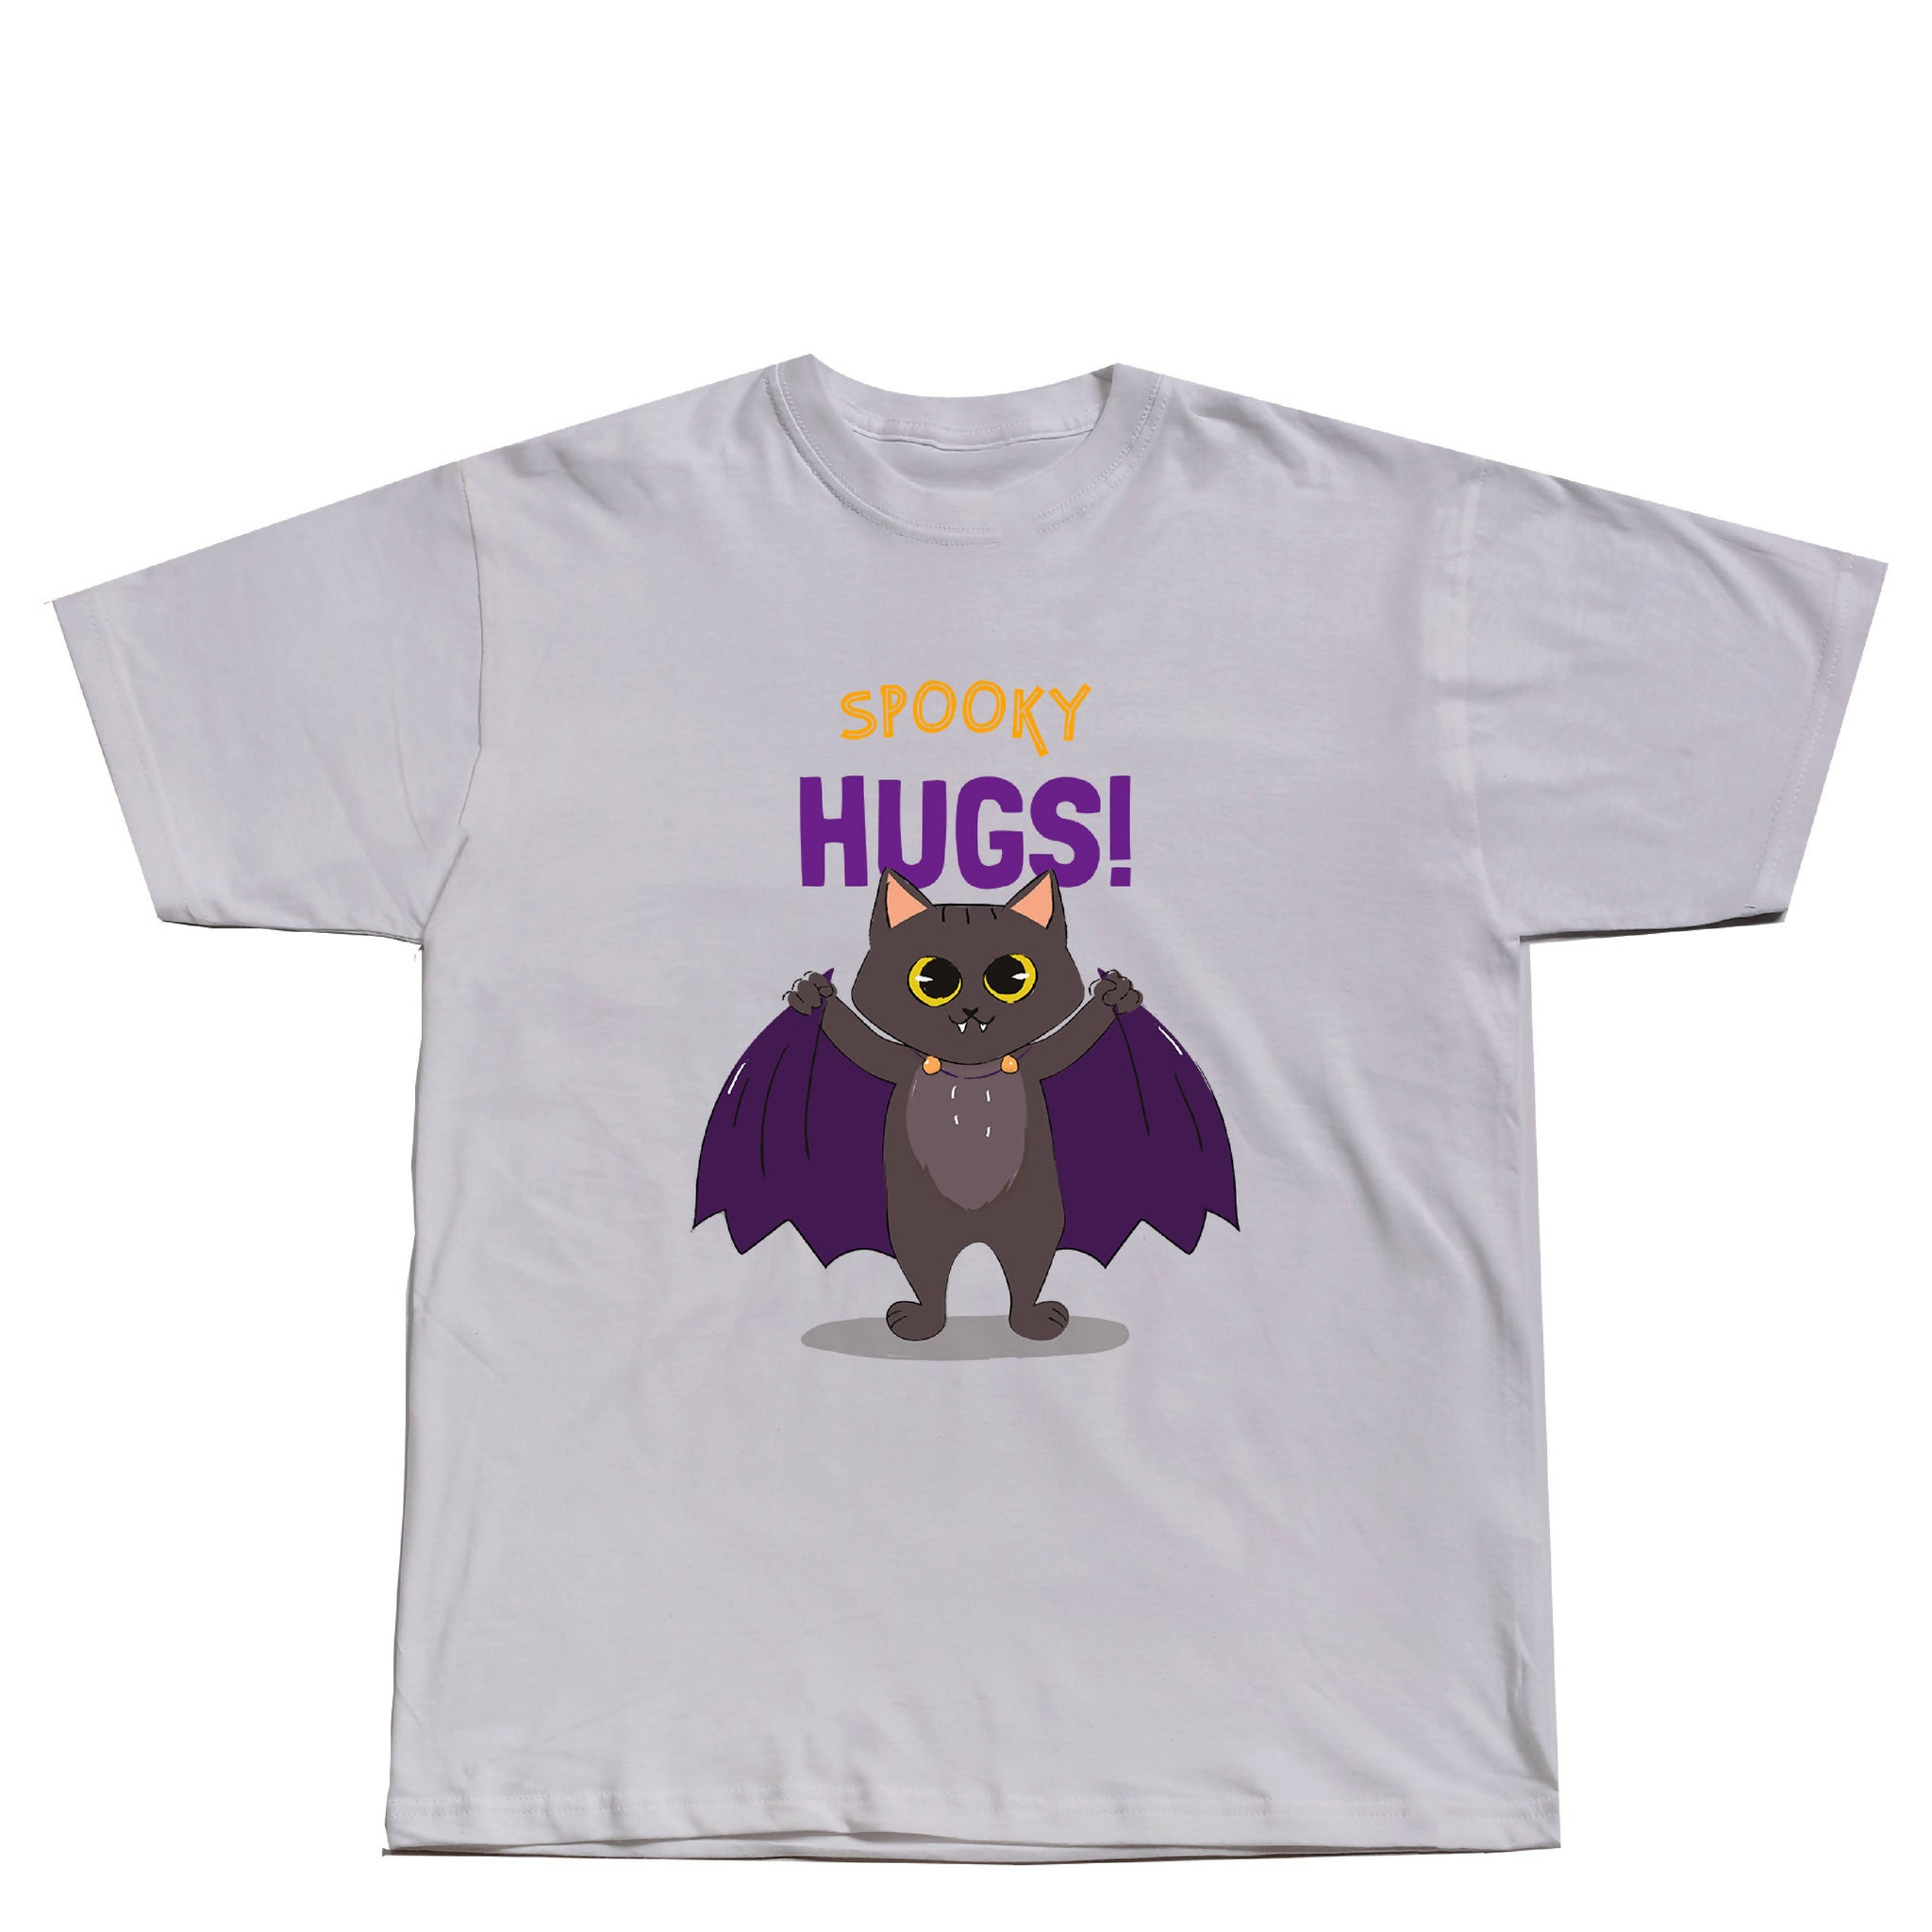 Spooky Hugs T-shirt